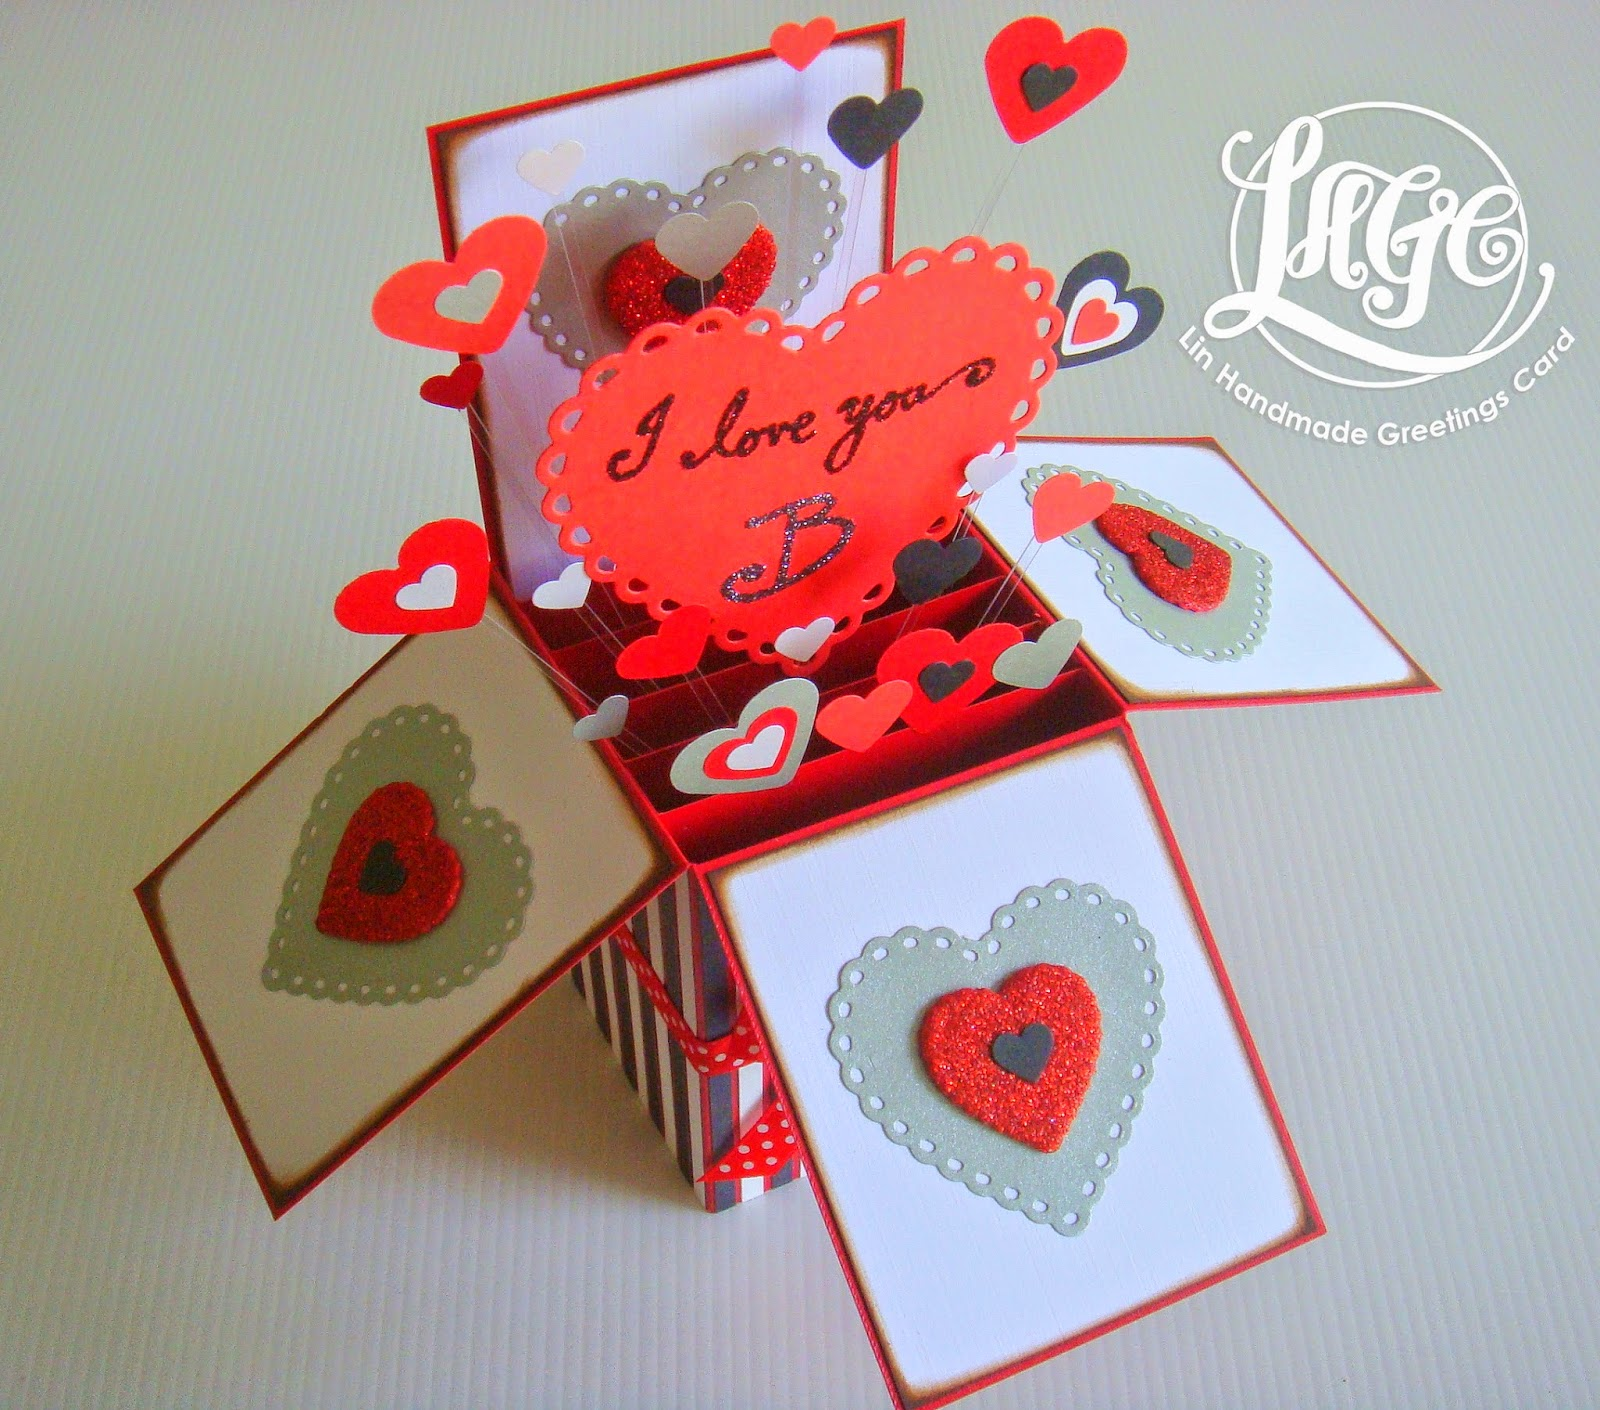 Hand Made Greeting Cards Images Homemade Holiday Card Designs